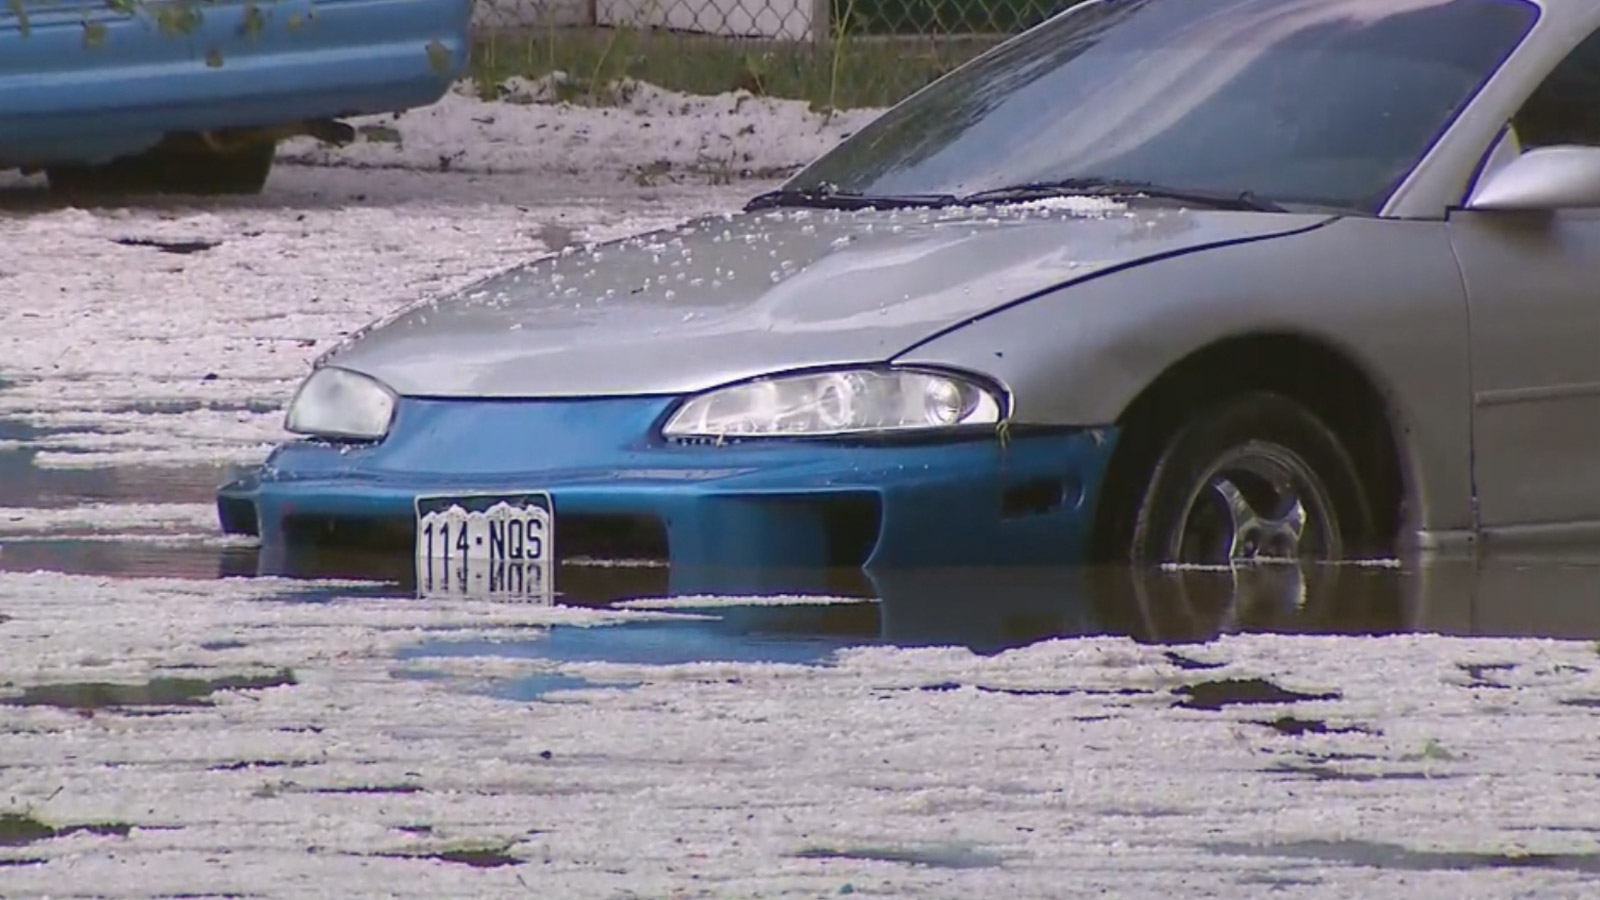 Hail floats atop flood waters in Aurora after severe storms hit Wednesday afternoon (credit: CBS)